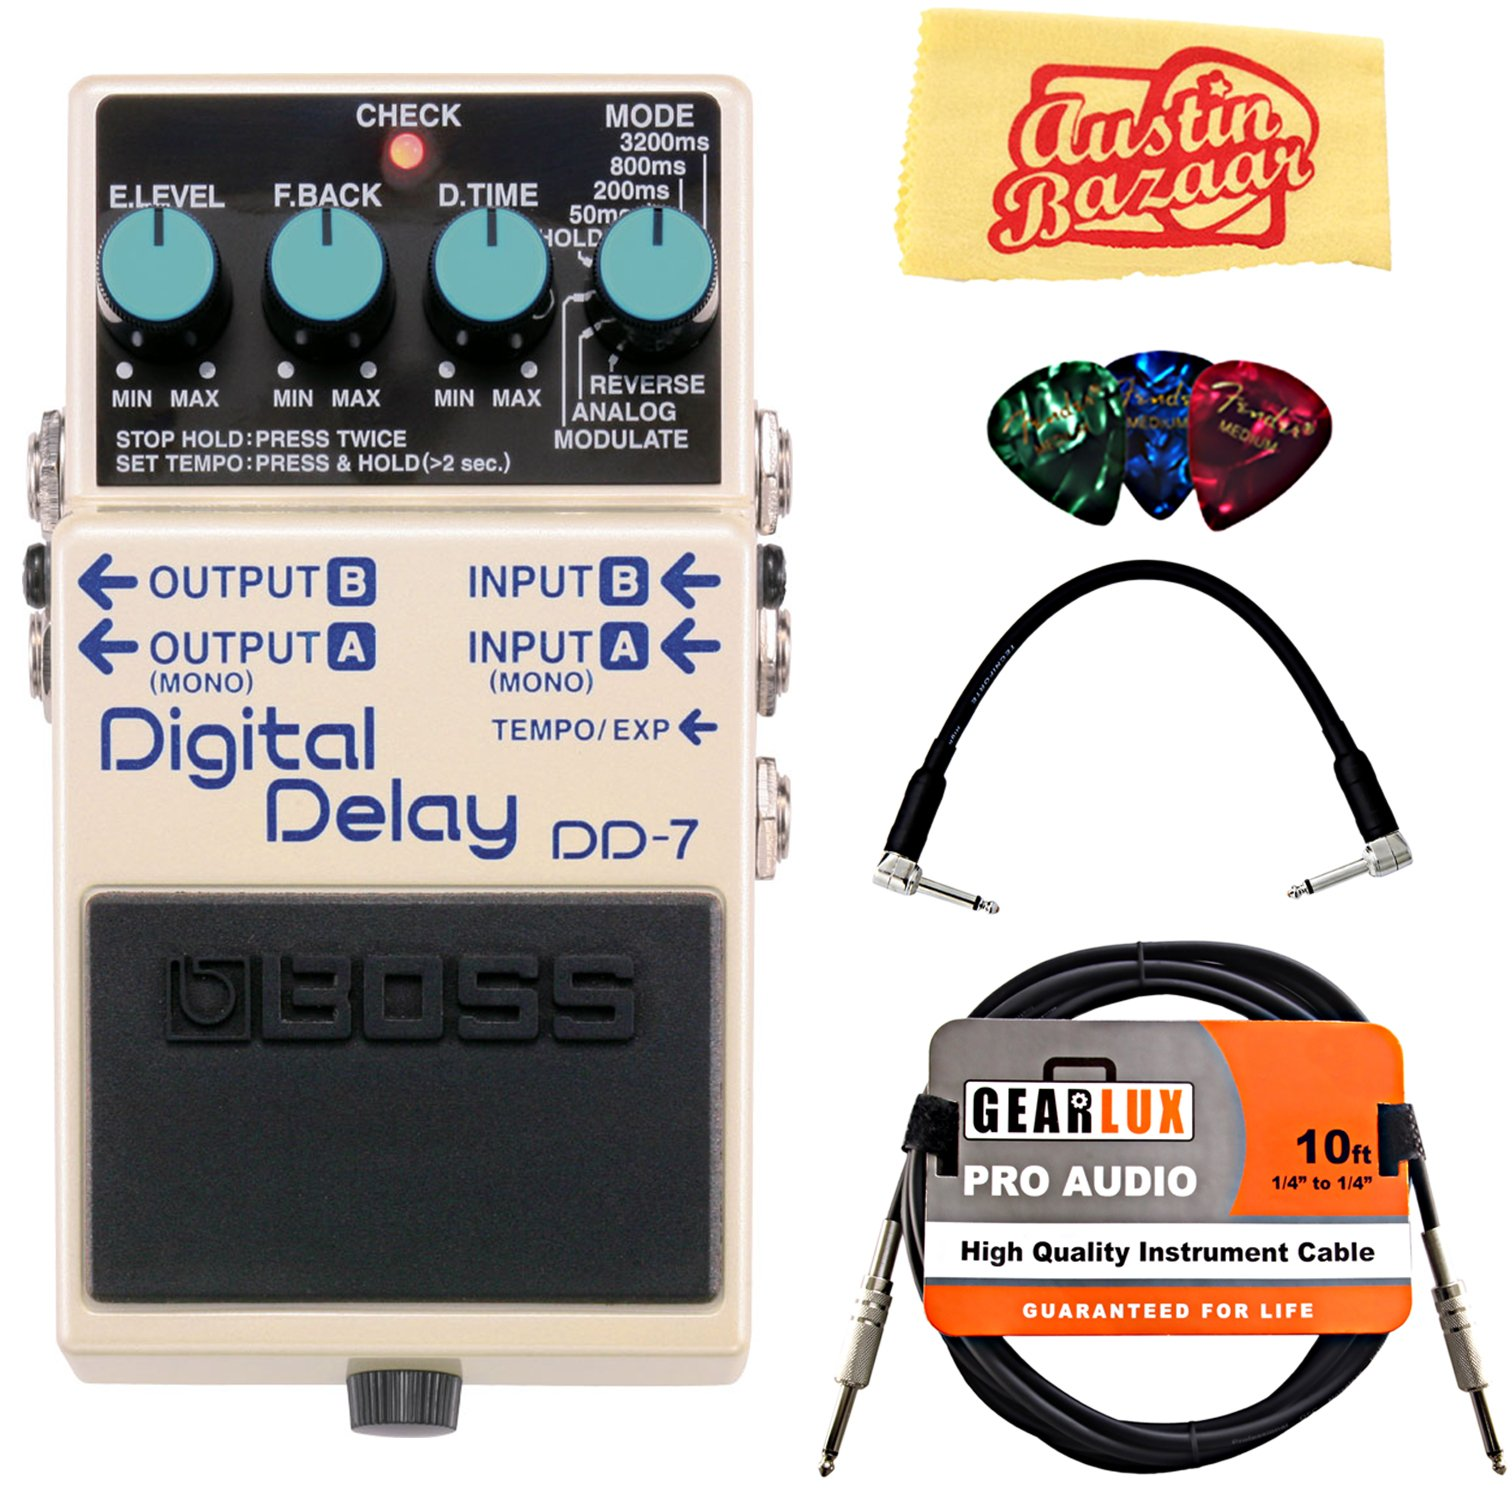 Boss DD-7 Digital Delay Guitar Effects Pedal Bundle with Gearlux Instrument Cable, Patch Cable, Picks, and Polishing Cloth by BOSS